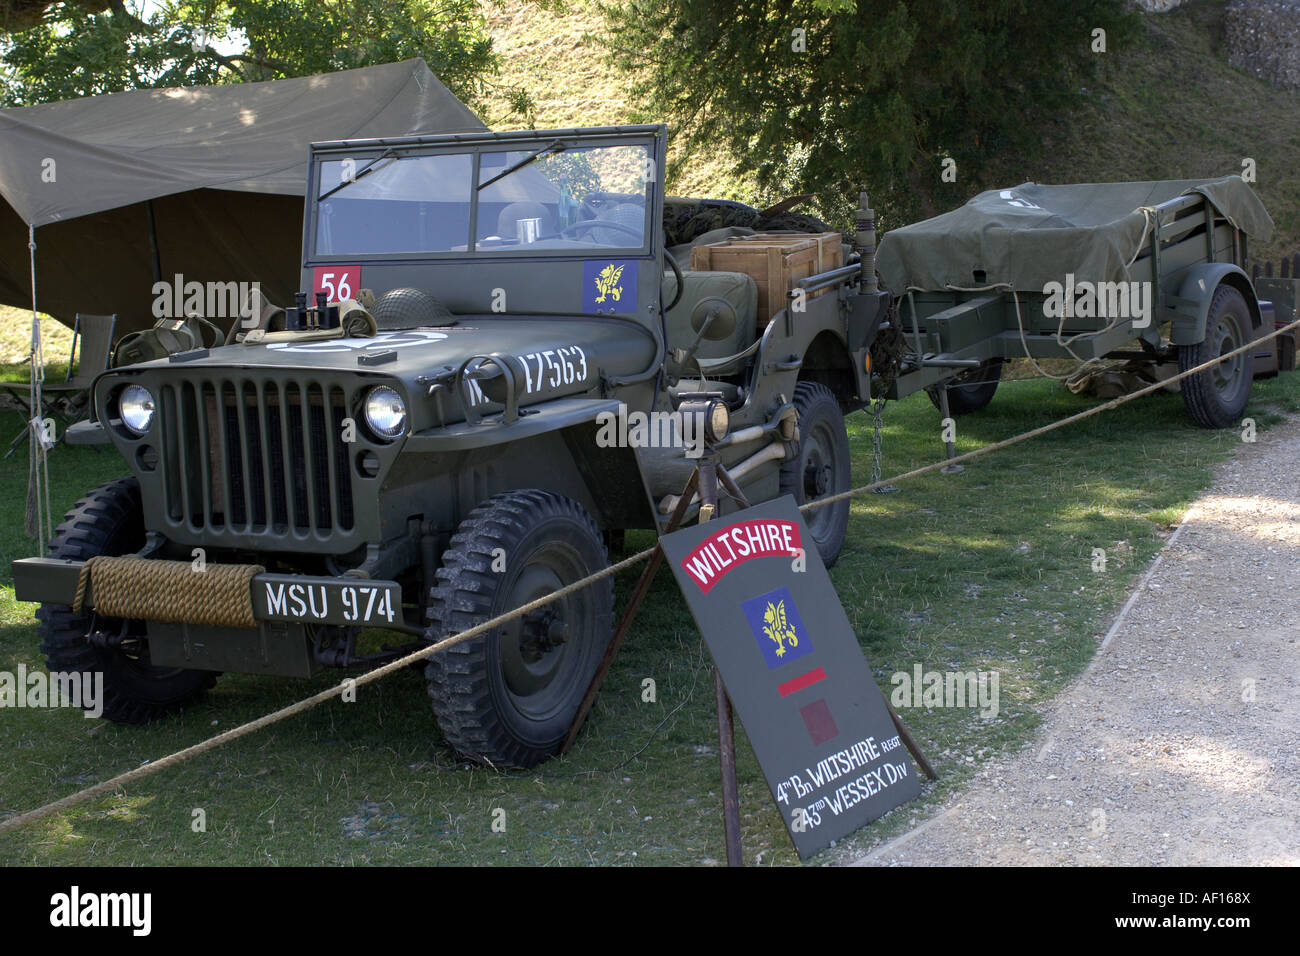 Fighting Jeep Stock Photos Images Alamy World War Ii Trailer Before Retored To Usmc Wwii Standards Ww2 Willys And As Used By The Allied Forces Image